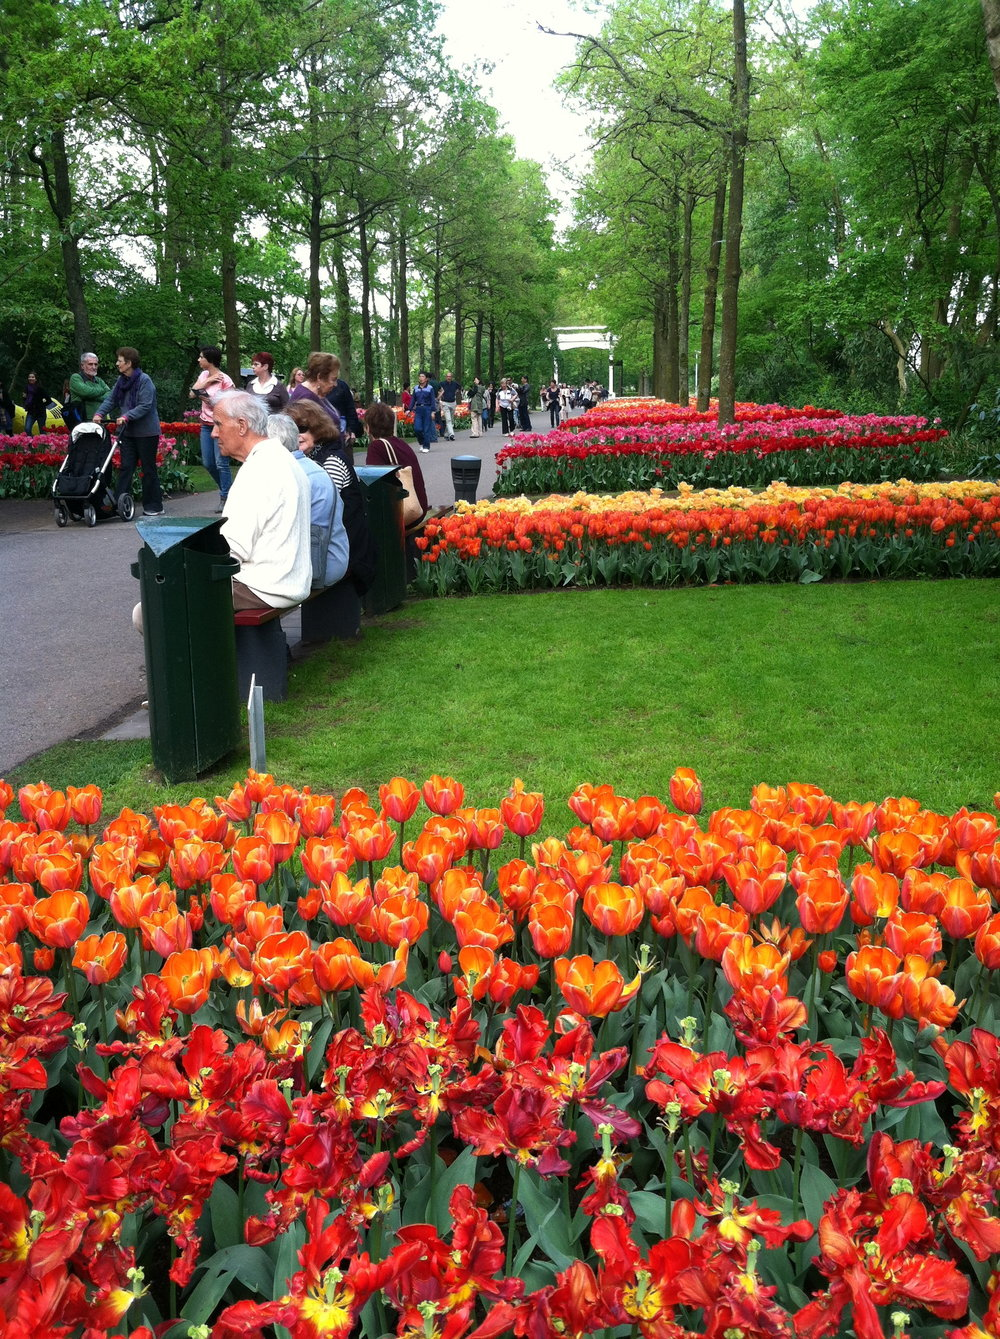 Entrance to the Keukenhof.